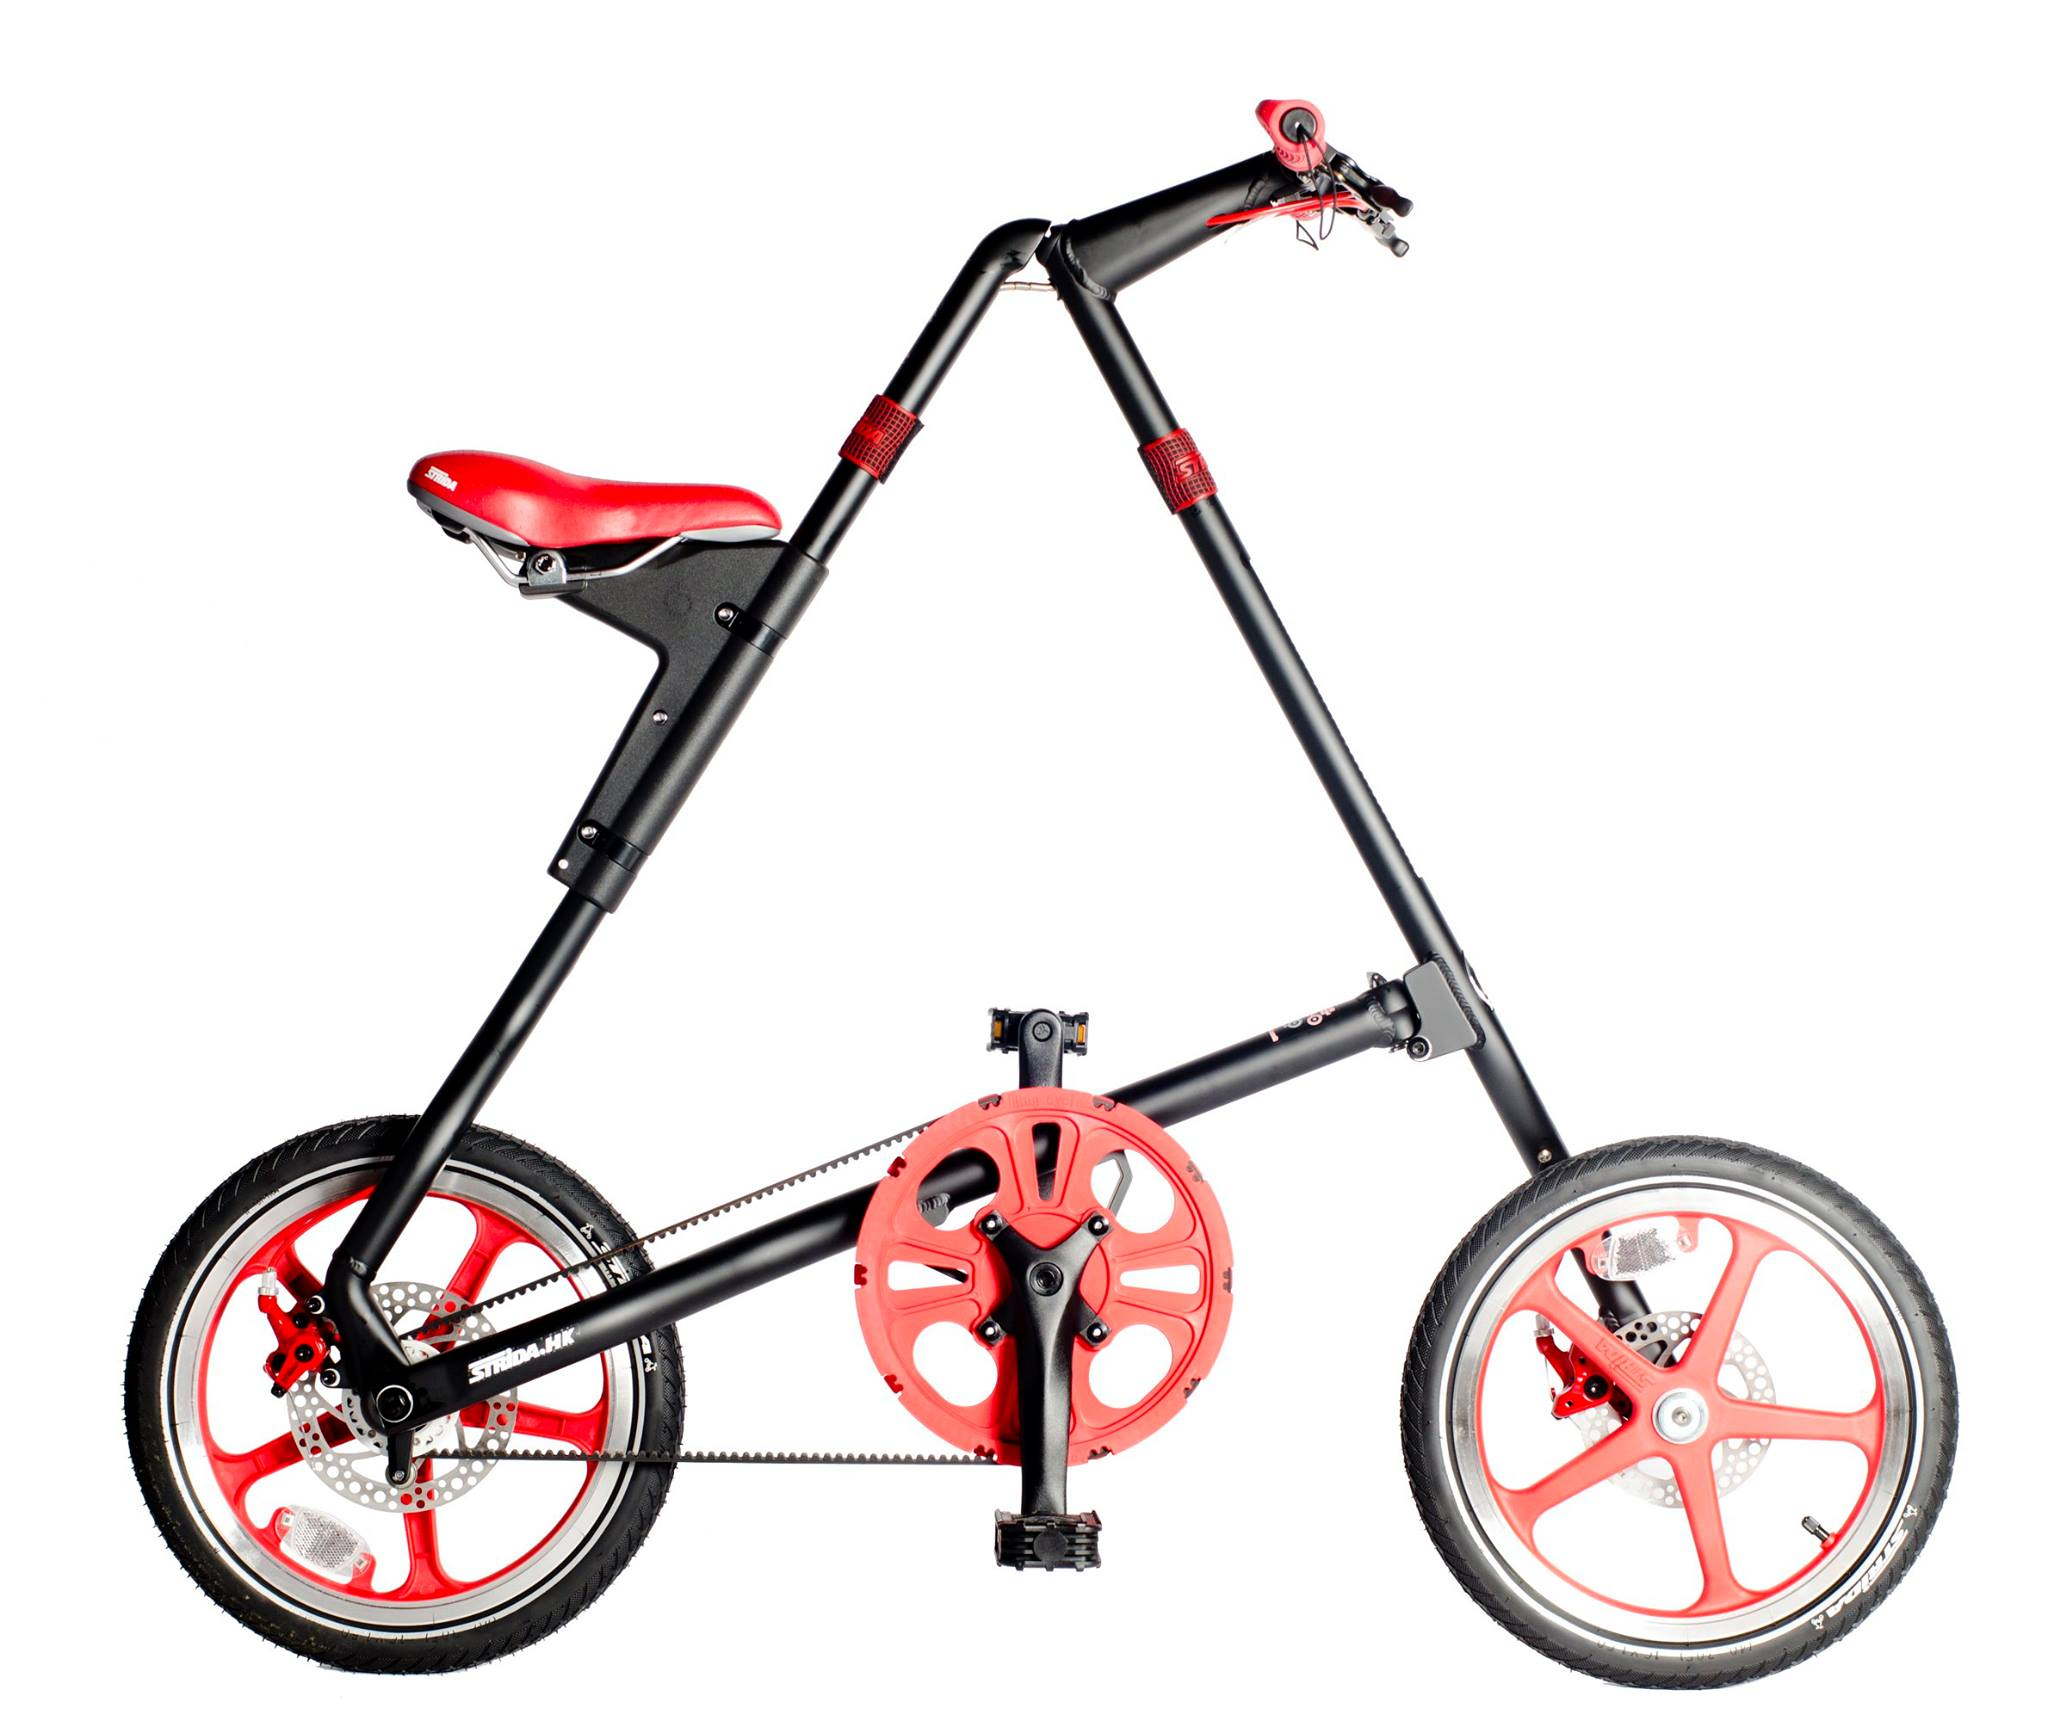 STRiDA LT matt black x Red strida lt STRiDA LT 12604651 931791873581557 7136969987090598035 o